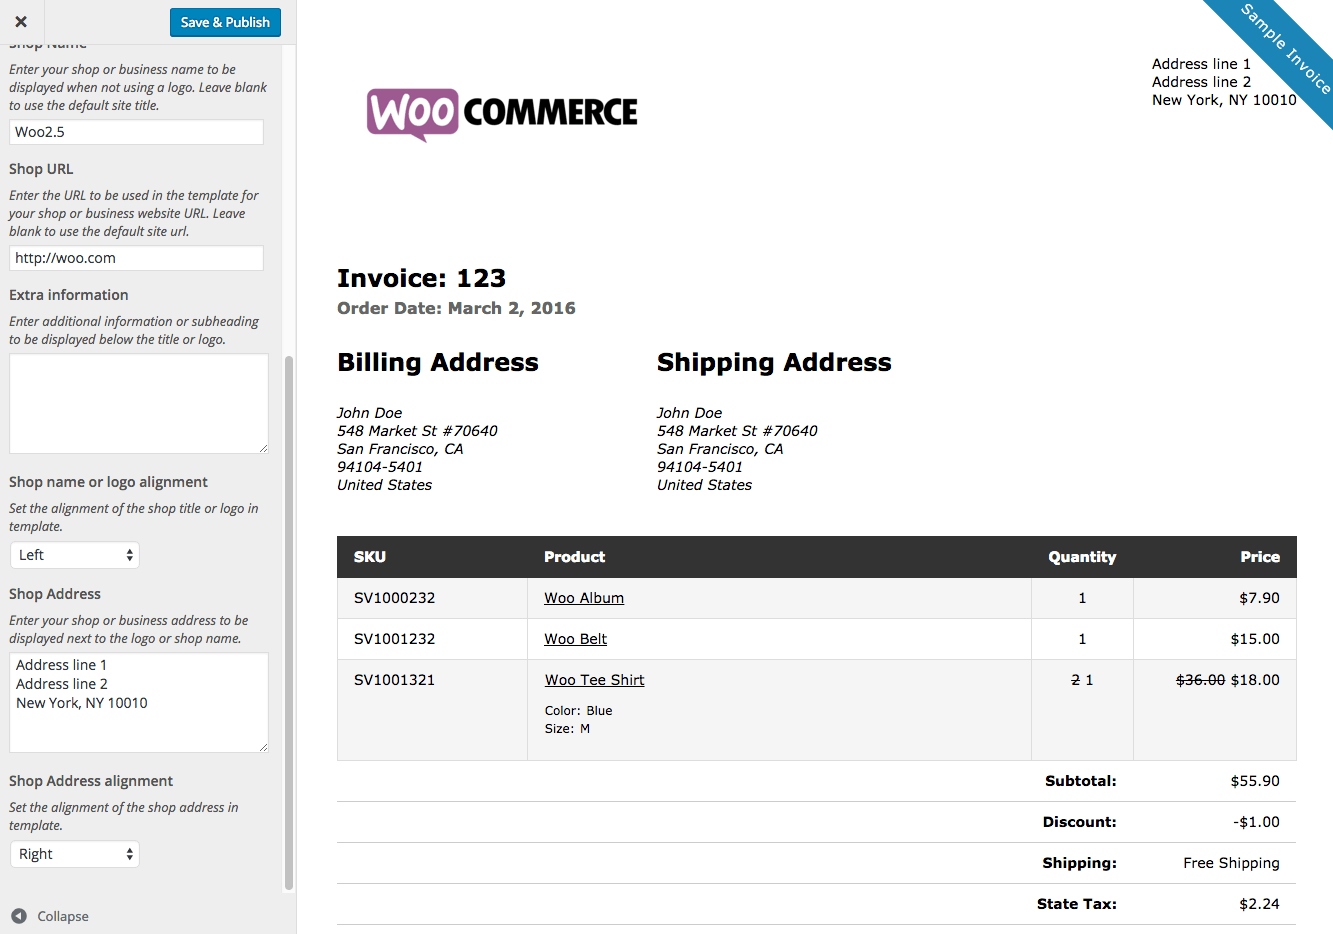 Soulfulpowerus  Remarkable Woocommerce Print Invoices Amp Packing Lists  Woocommerce Docs With Likable Woocommerce Print Invoices  Packing Lists Customizer With Enchanting New Truck Invoice Prices Also Printable Blank Invoice Template In Addition Car Invoice Price By Vin And Example Of A Invoice As Well As Basware Invoice Processing Additionally Quote Invoice Template From Docswoocommercecom With Soulfulpowerus  Likable Woocommerce Print Invoices Amp Packing Lists  Woocommerce Docs With Enchanting Woocommerce Print Invoices  Packing Lists Customizer And Remarkable New Truck Invoice Prices Also Printable Blank Invoice Template In Addition Car Invoice Price By Vin From Docswoocommercecom